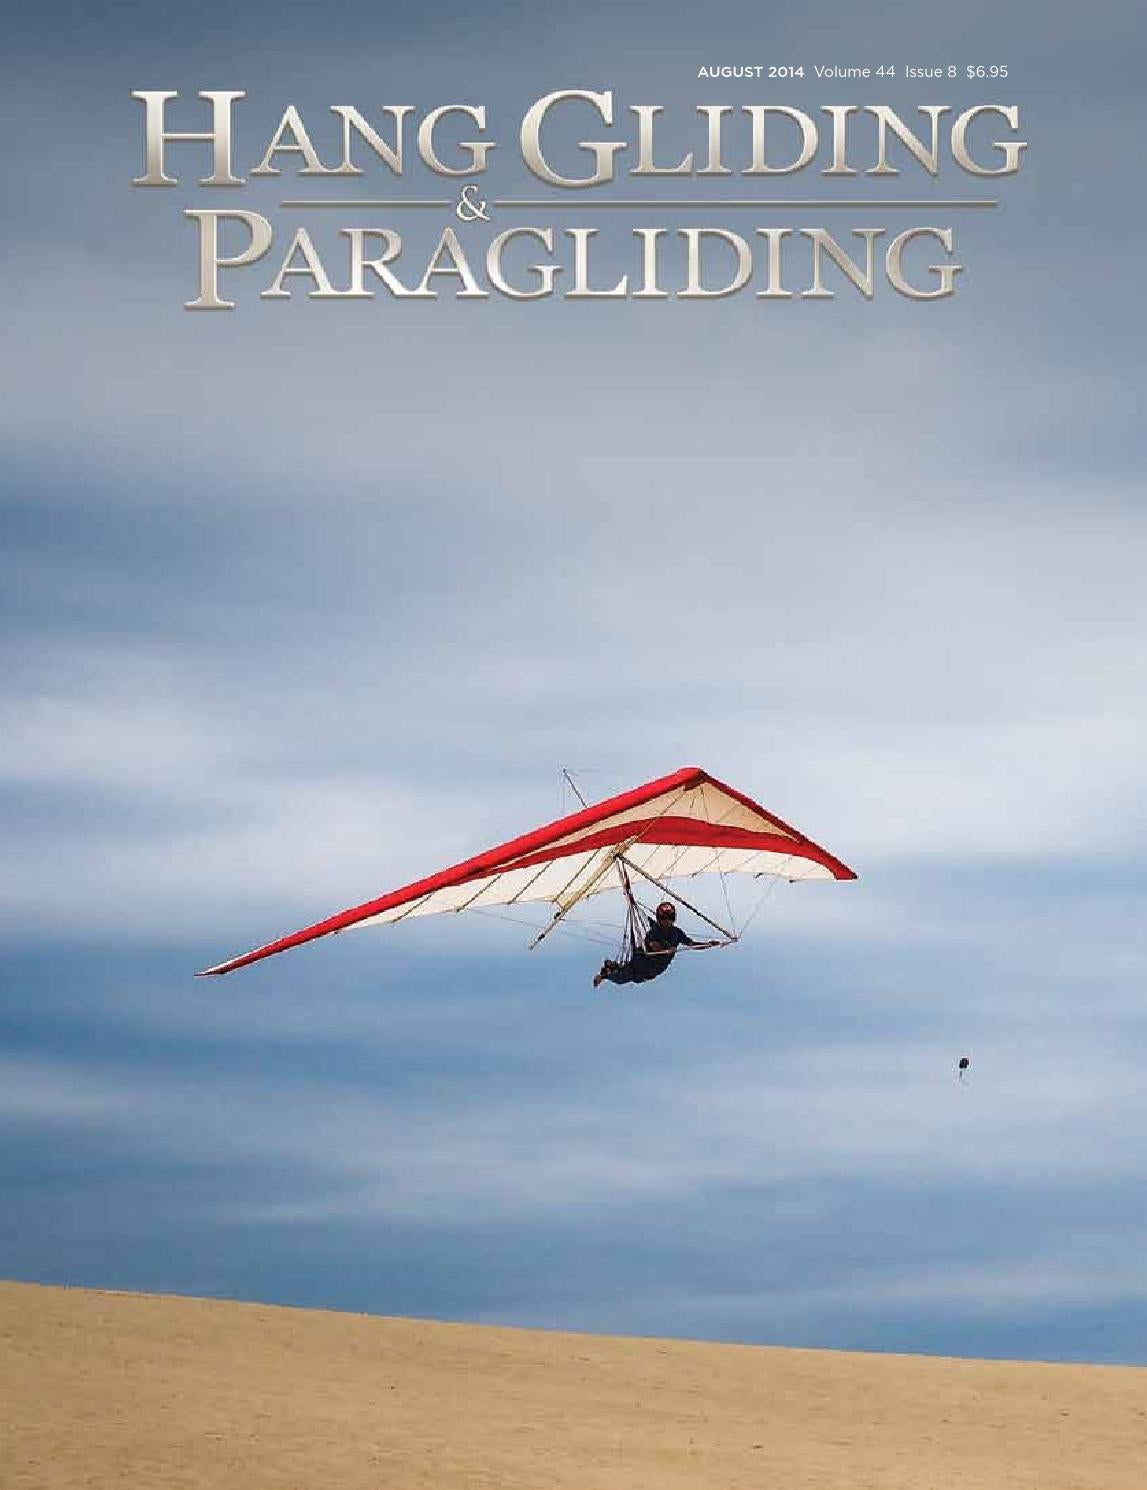 Hang Gliding & Paragliding Vol44/Iss08 Aug2014 by US Hang